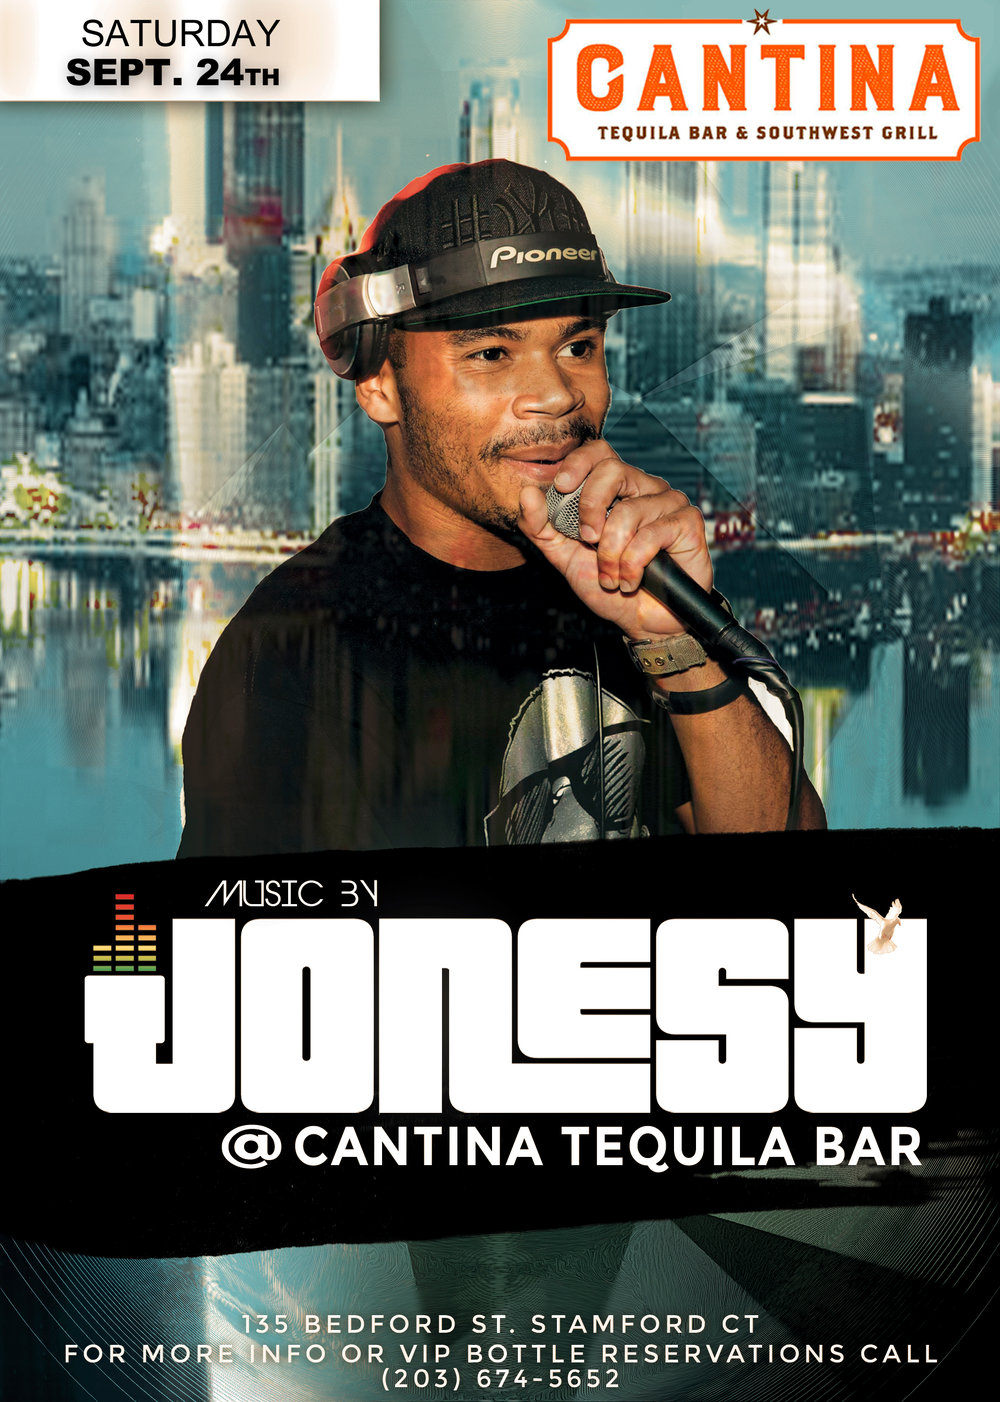 SATURDAY, SEPTEMBER 24TH JOIN ME AT CANTINA TEQUILA BAR & SOUTHWEST GRILL FOR MUSIC BY YOURS TRULY 10PM - CLOSE.  DELICIOUS FOOD & COCKTAILS + THE BEST MUSIC IN THE STAMFORD.  HOPE TO SEE EVERYONE THERE!